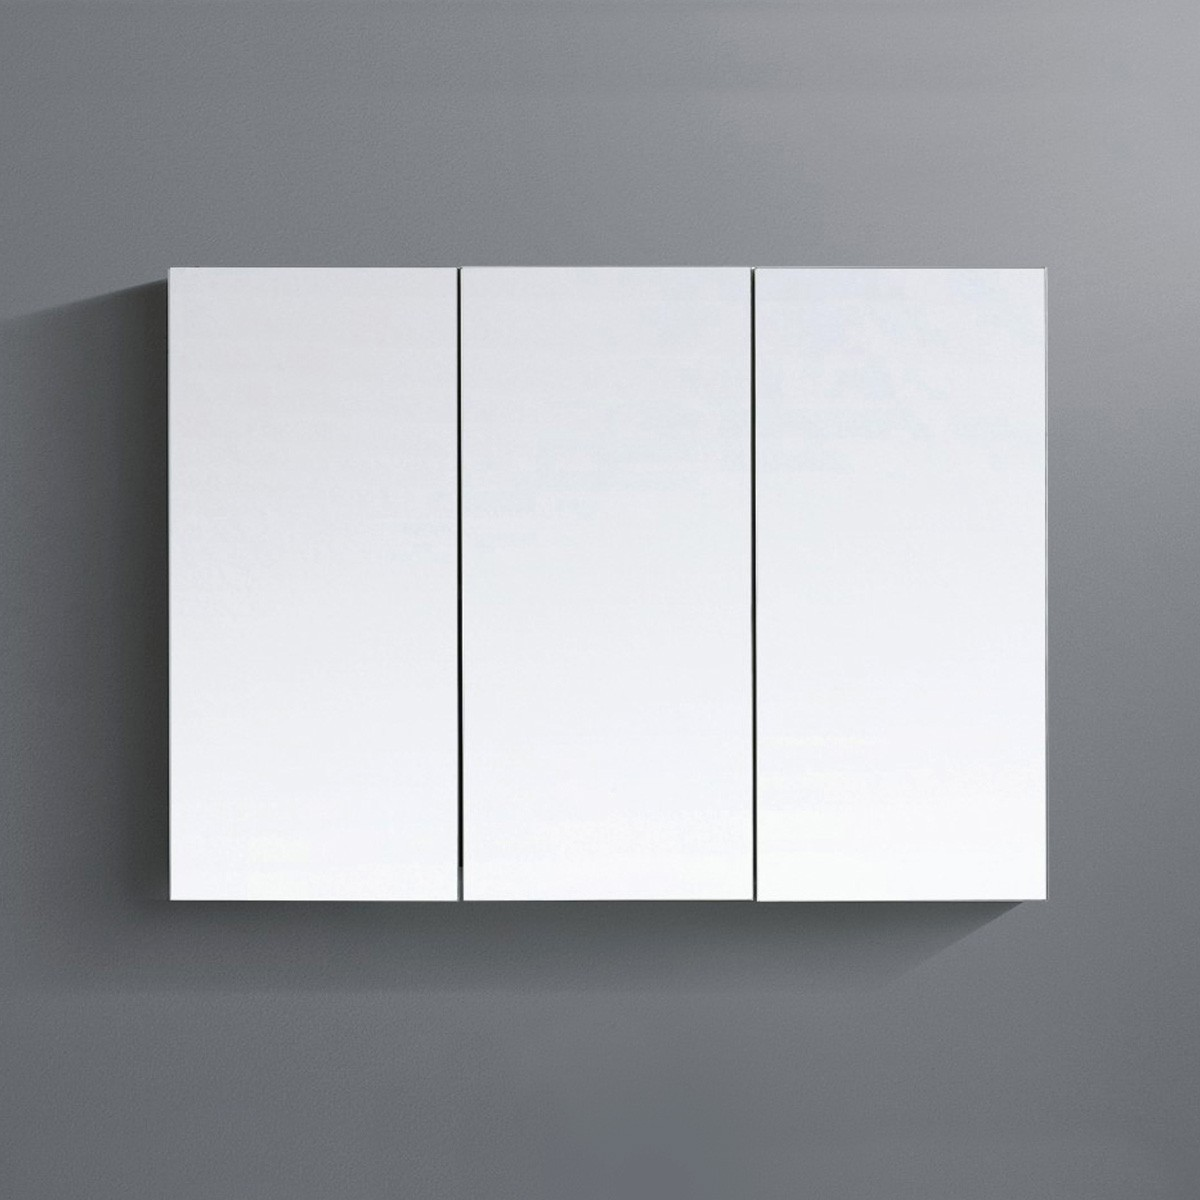 36 x 26 In. Mirror Cabinet with 3 Mirror Doors (ZRW1002WH-M)